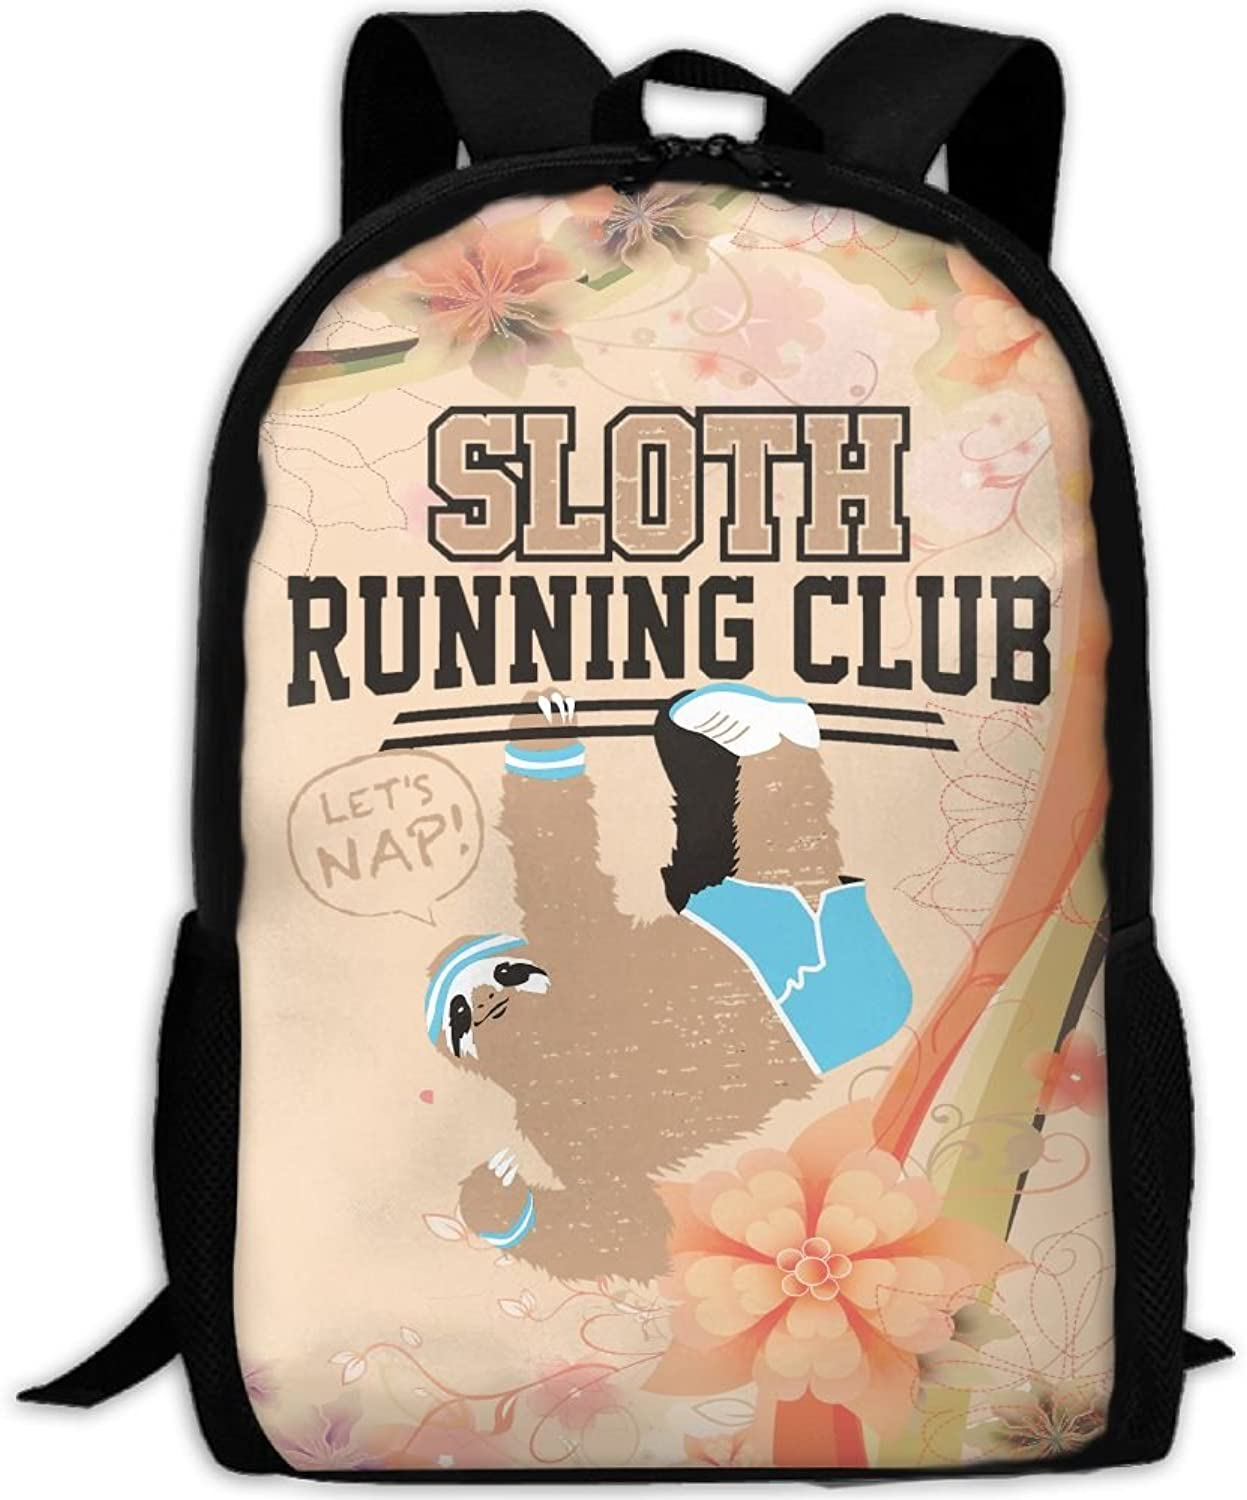 Adult Backpack Sloth Running Club College Daypack Oxford Bag Unisex Business Travel Sports Bag with Adjustable Strap